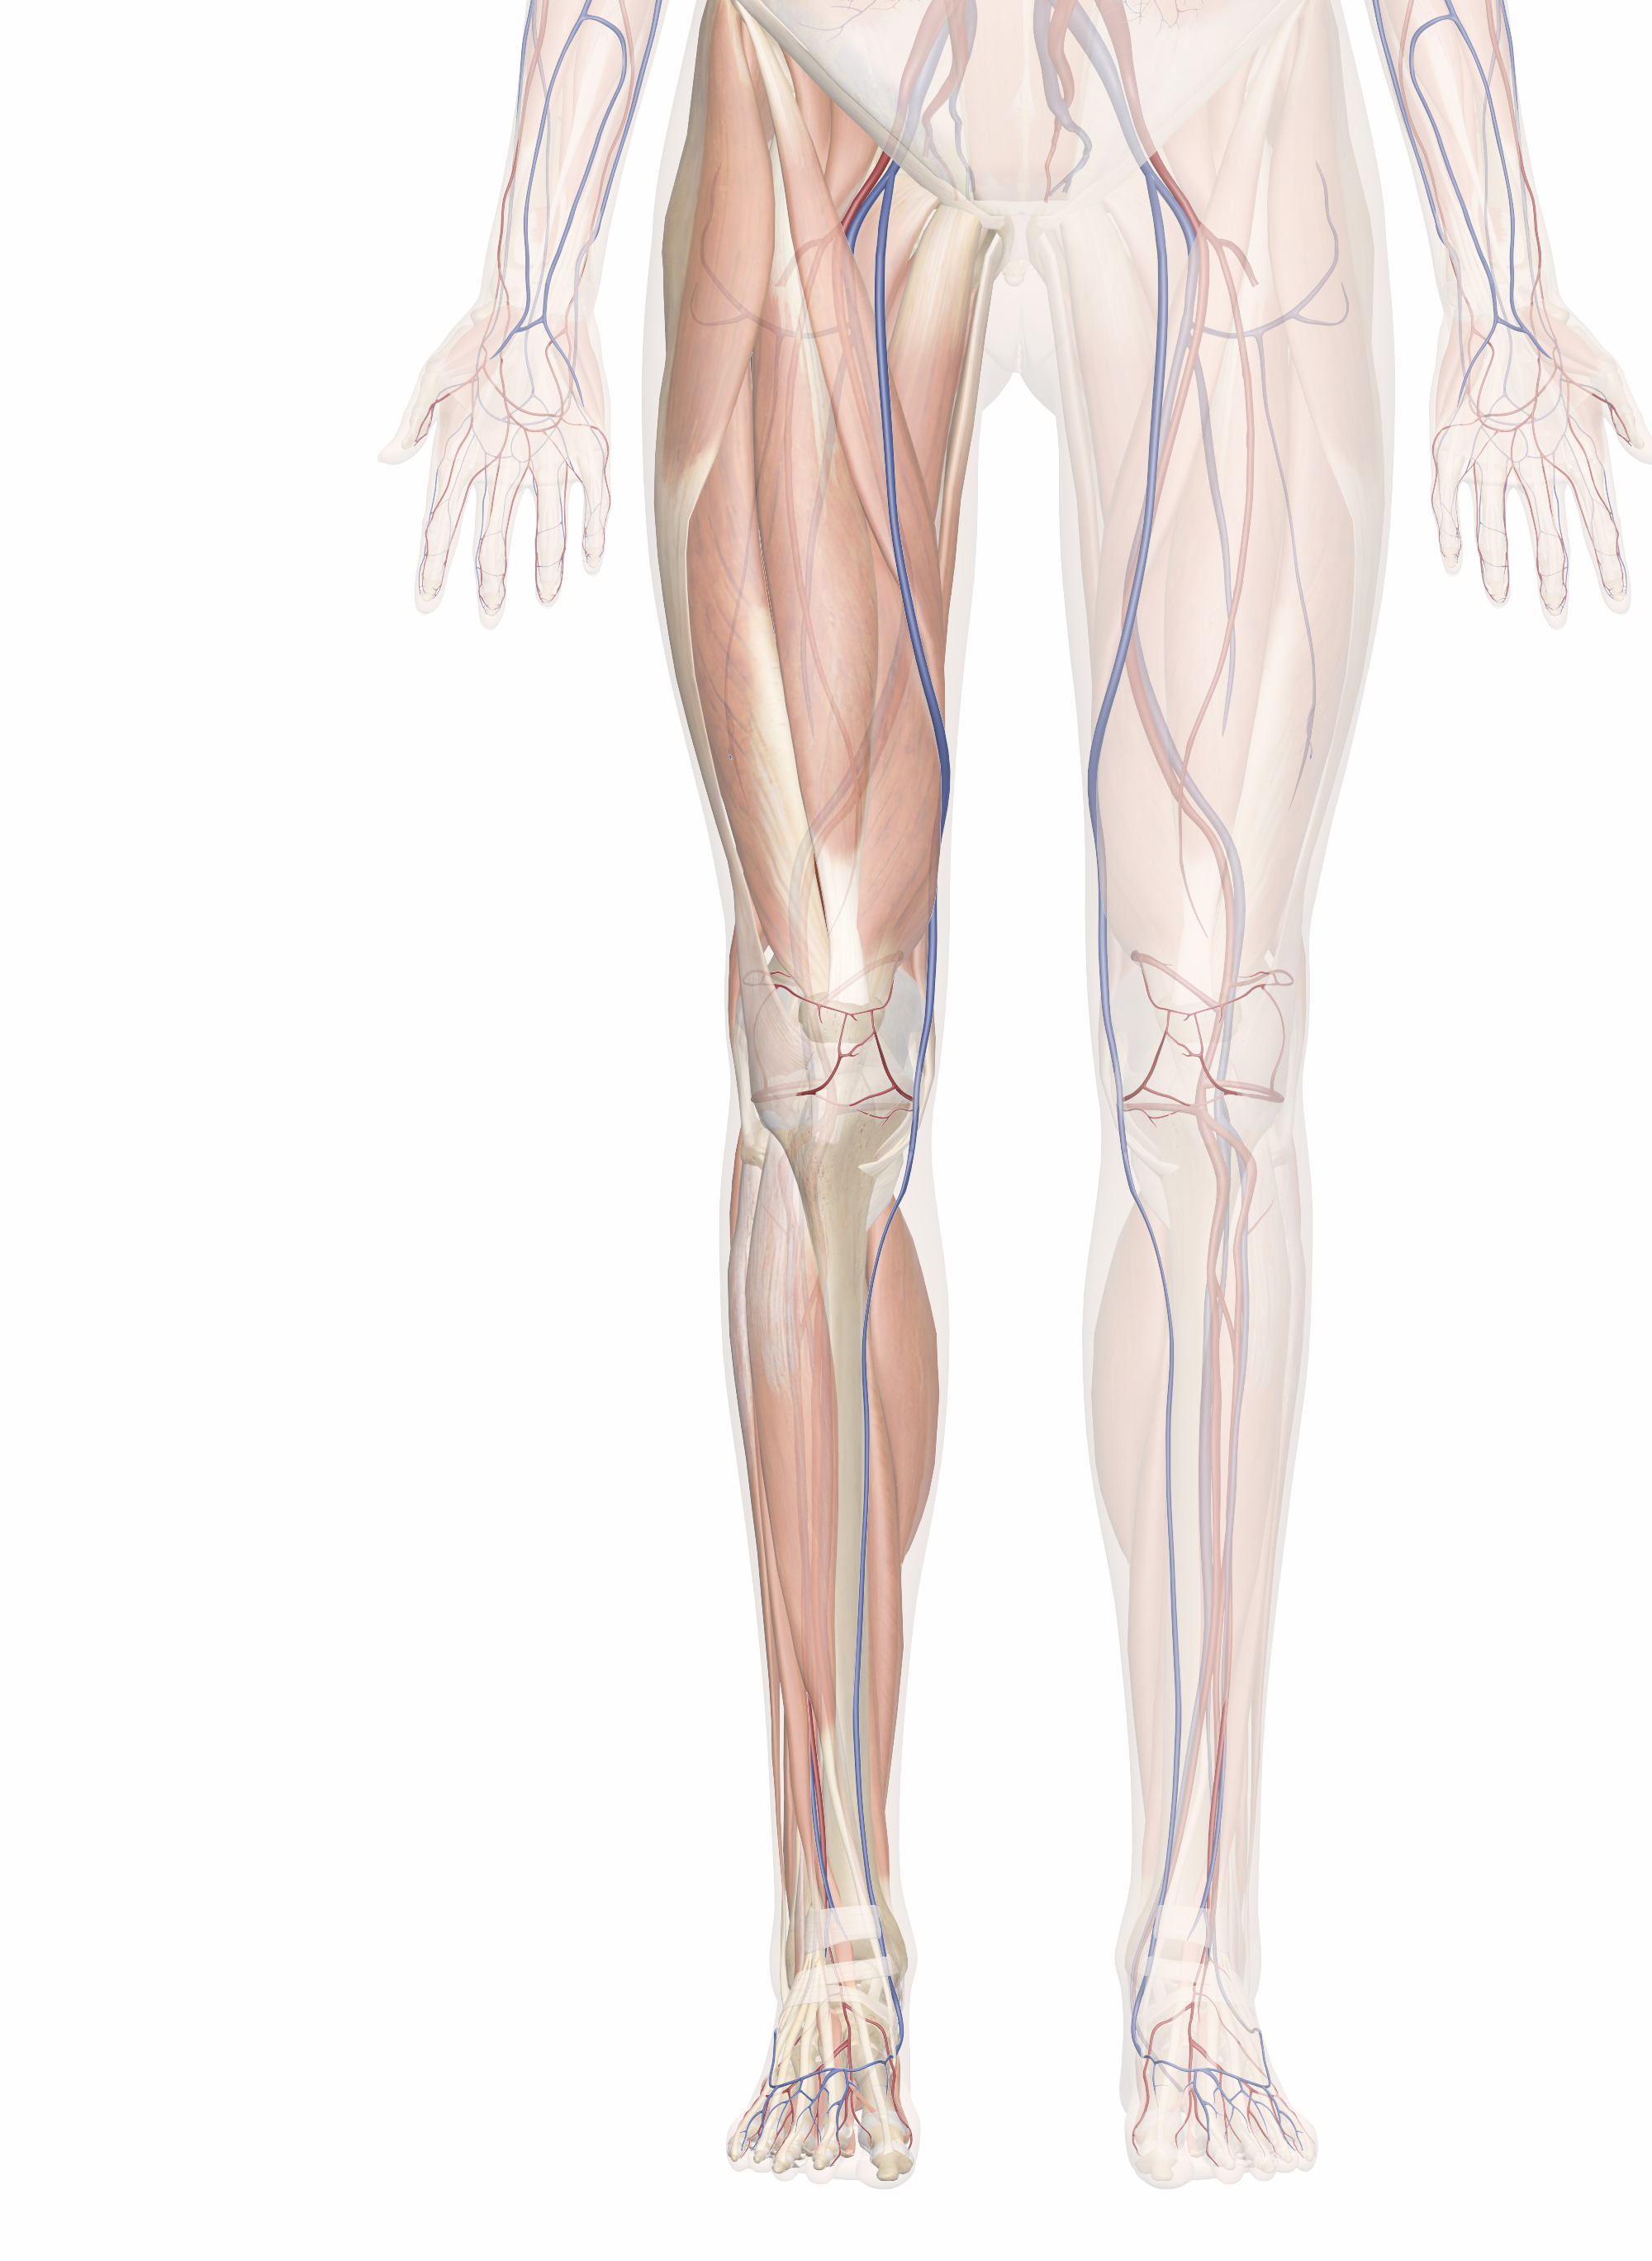 Leg Muscle Png - Cardiovascular System of the Leg and Foot